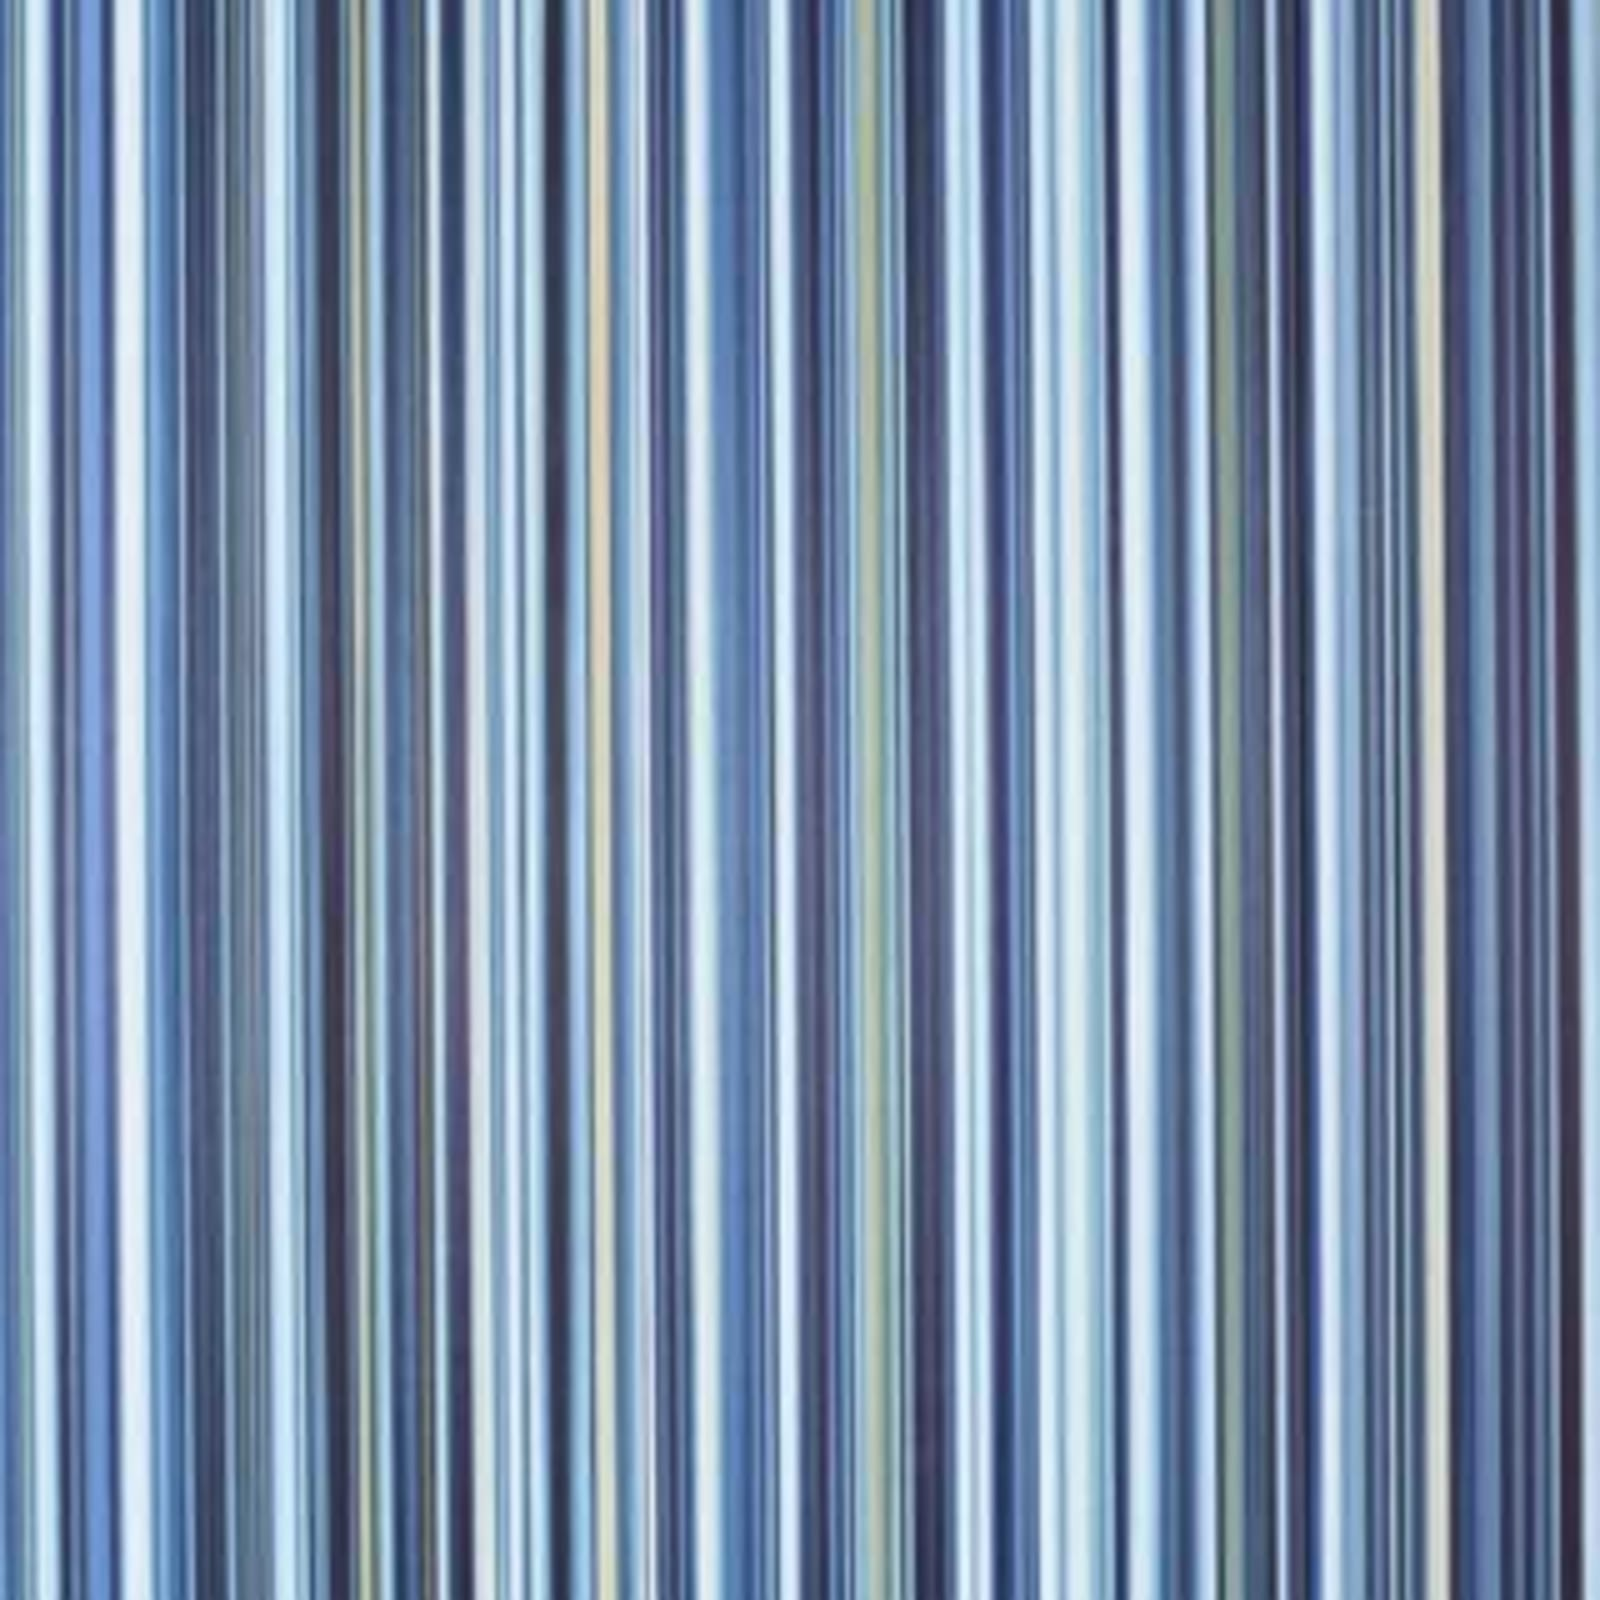 Stripe Paintings